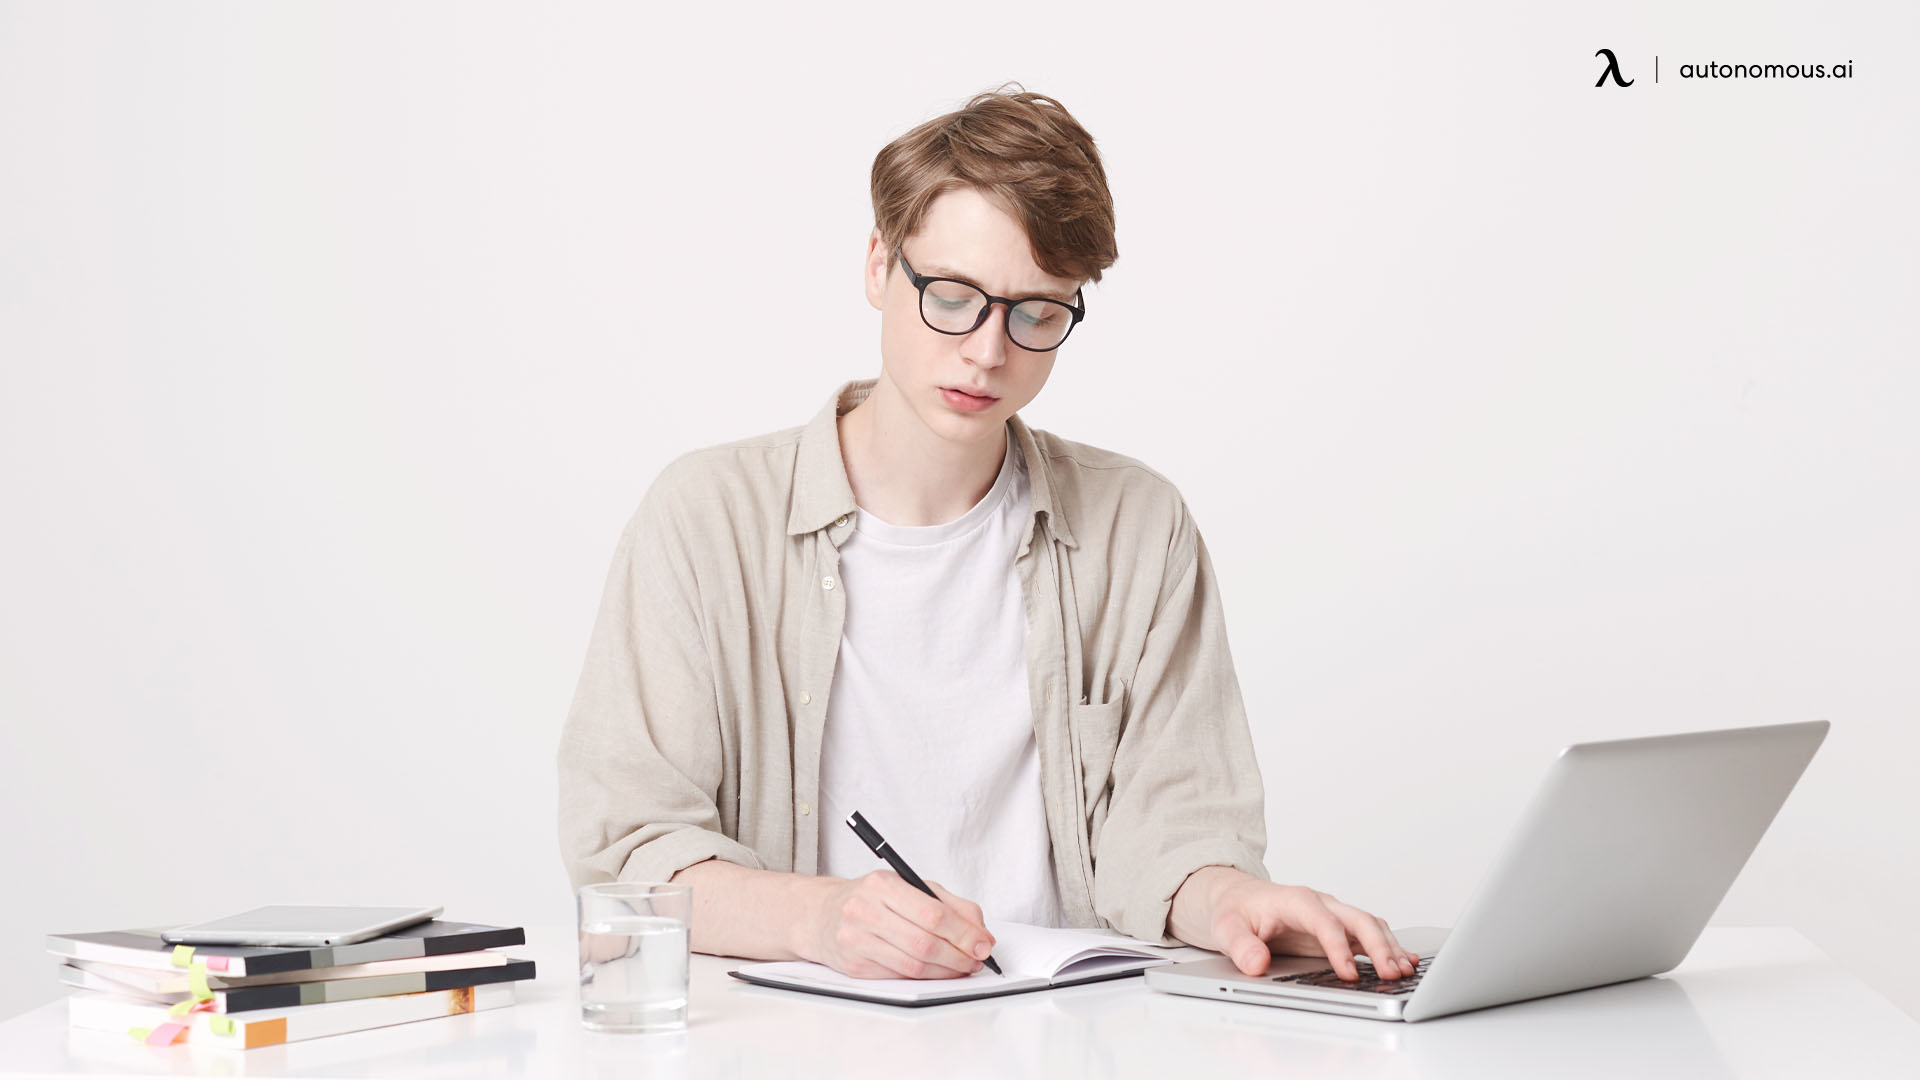 Why is Proper Sitting Posture for Writing Important?